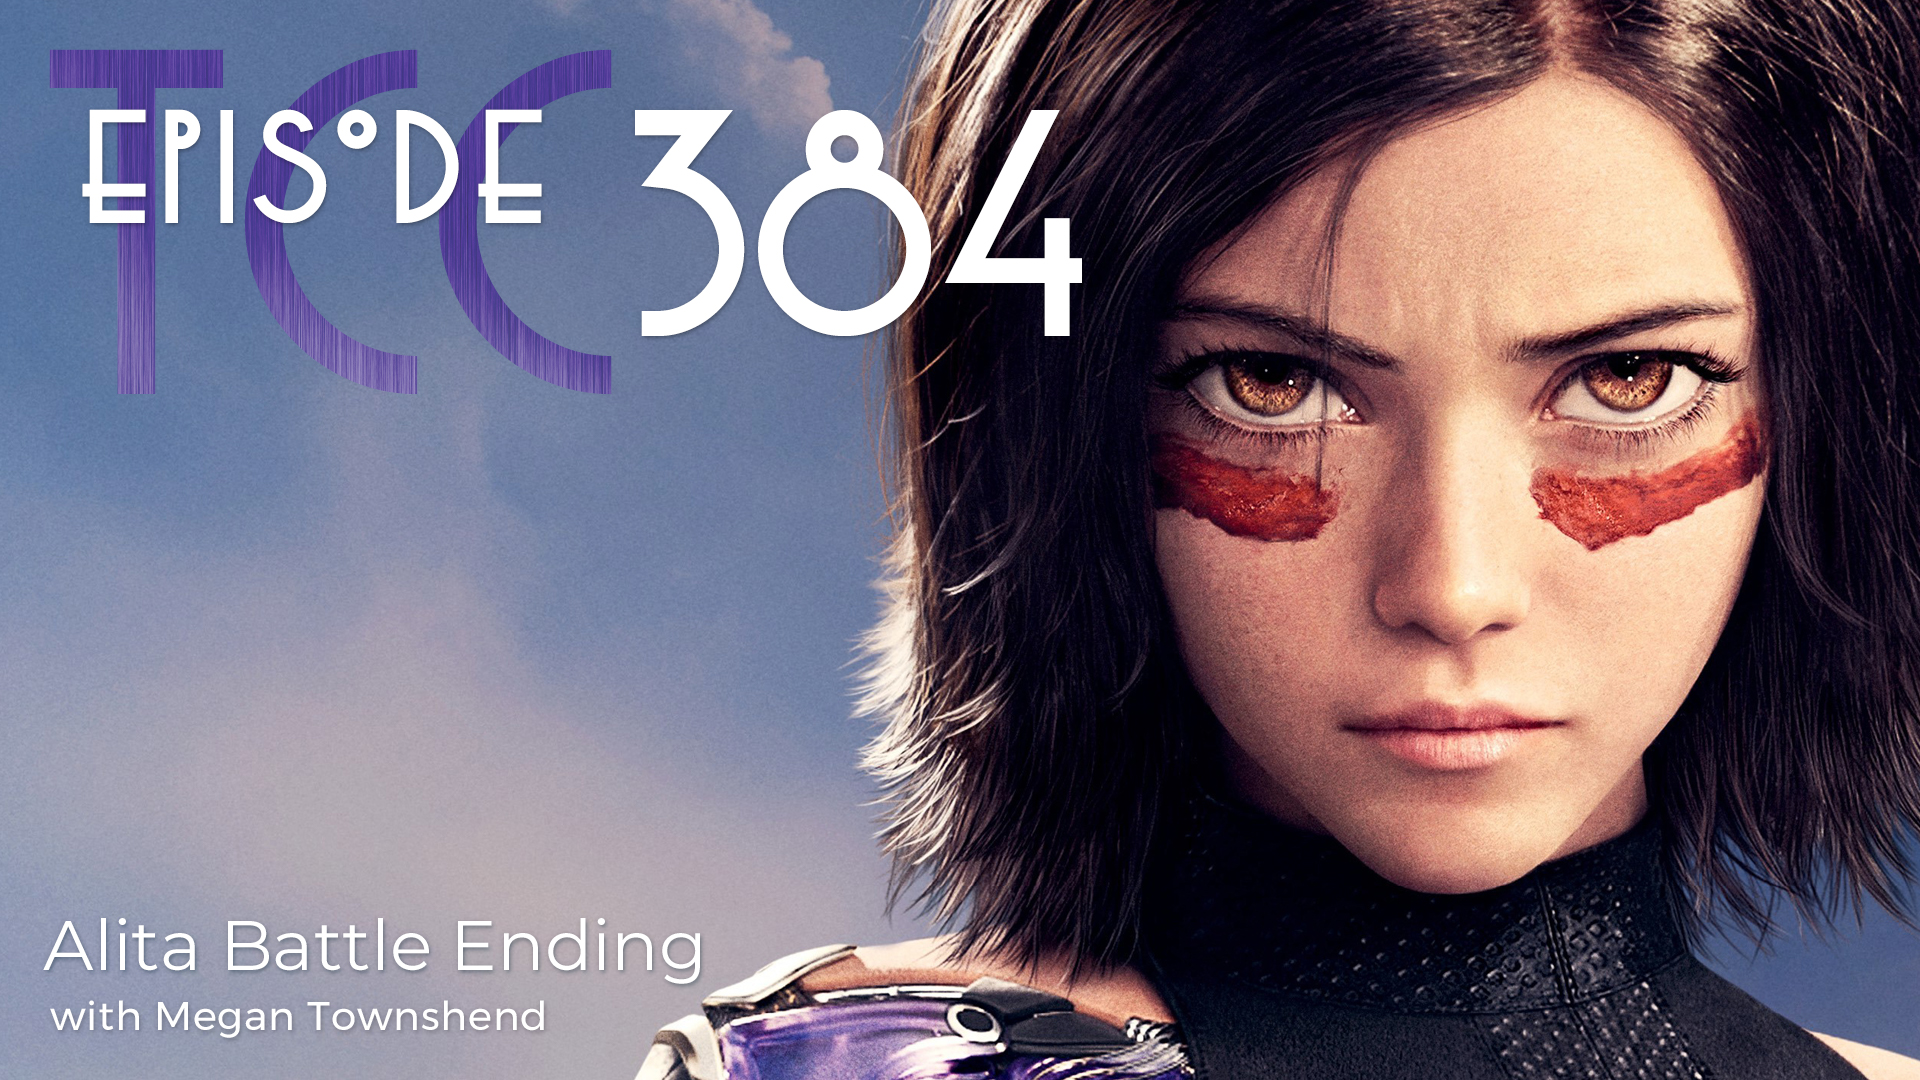 The Citadel Cafe 384: Alita Battle Ending